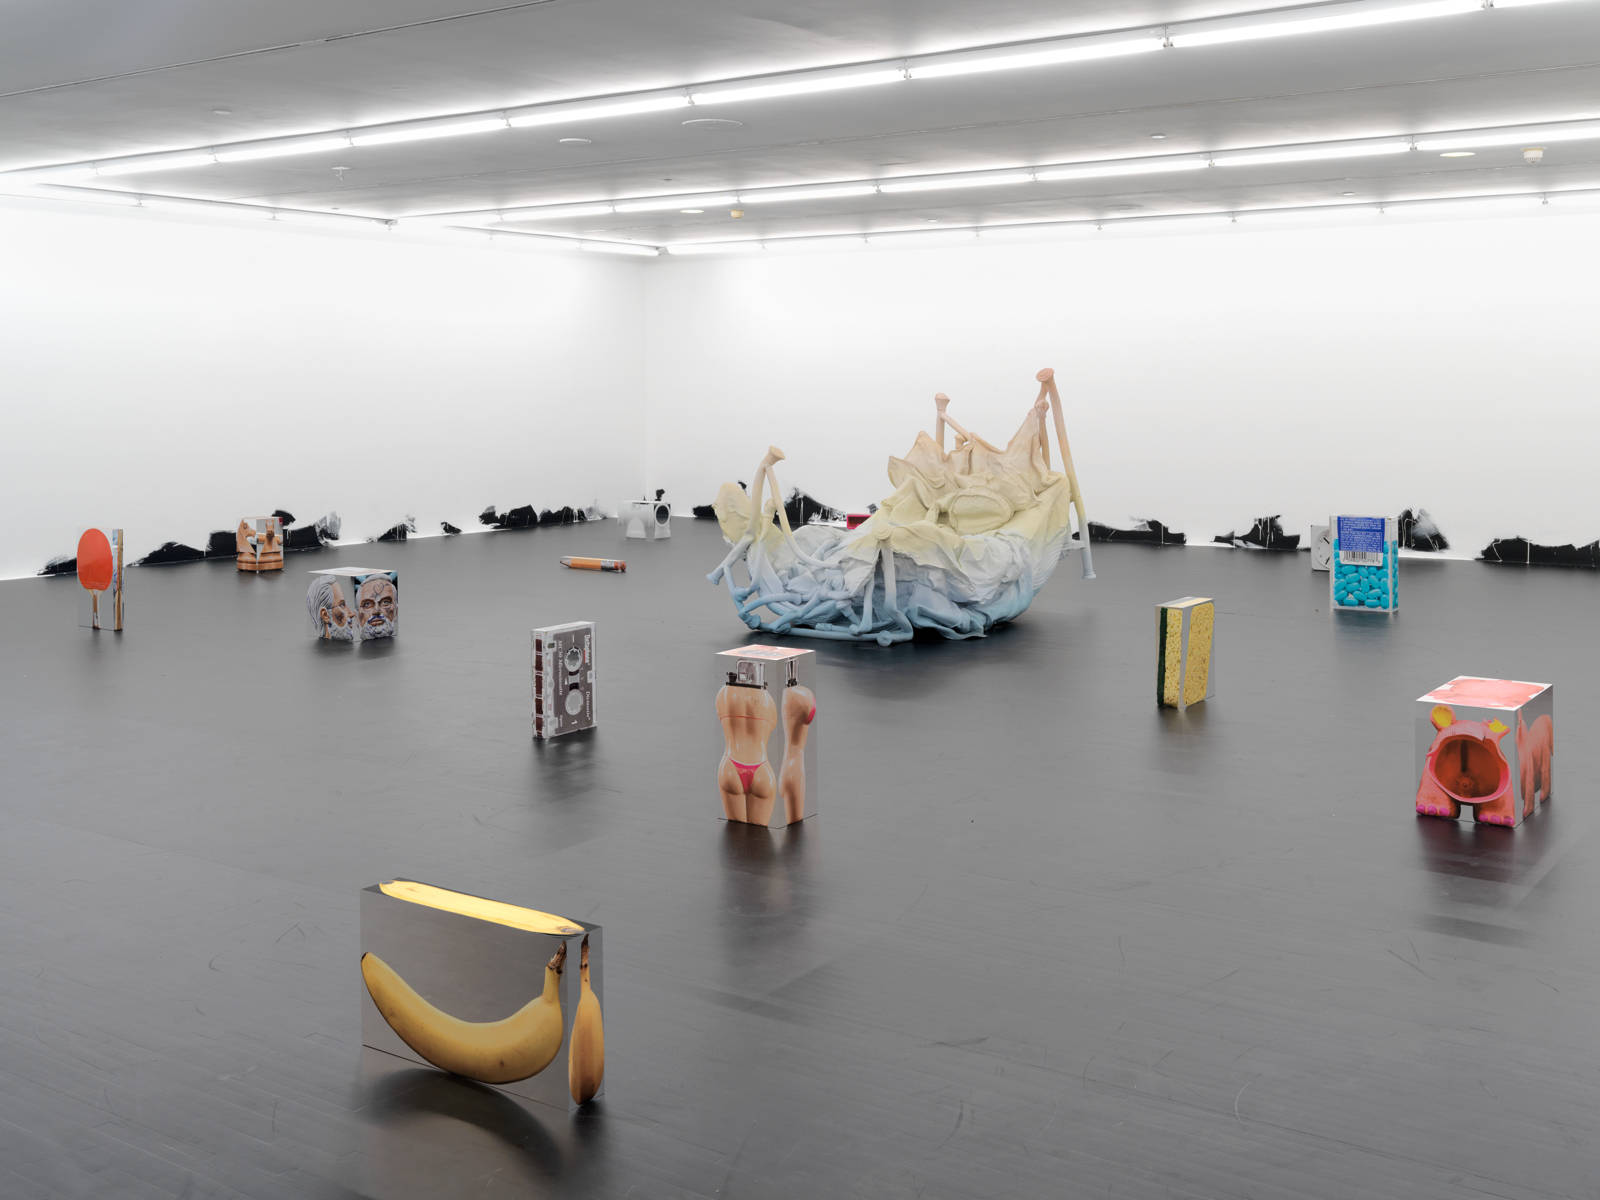 Urs Fischer / Exhibition view, MOCA, Los Angeles / 2013